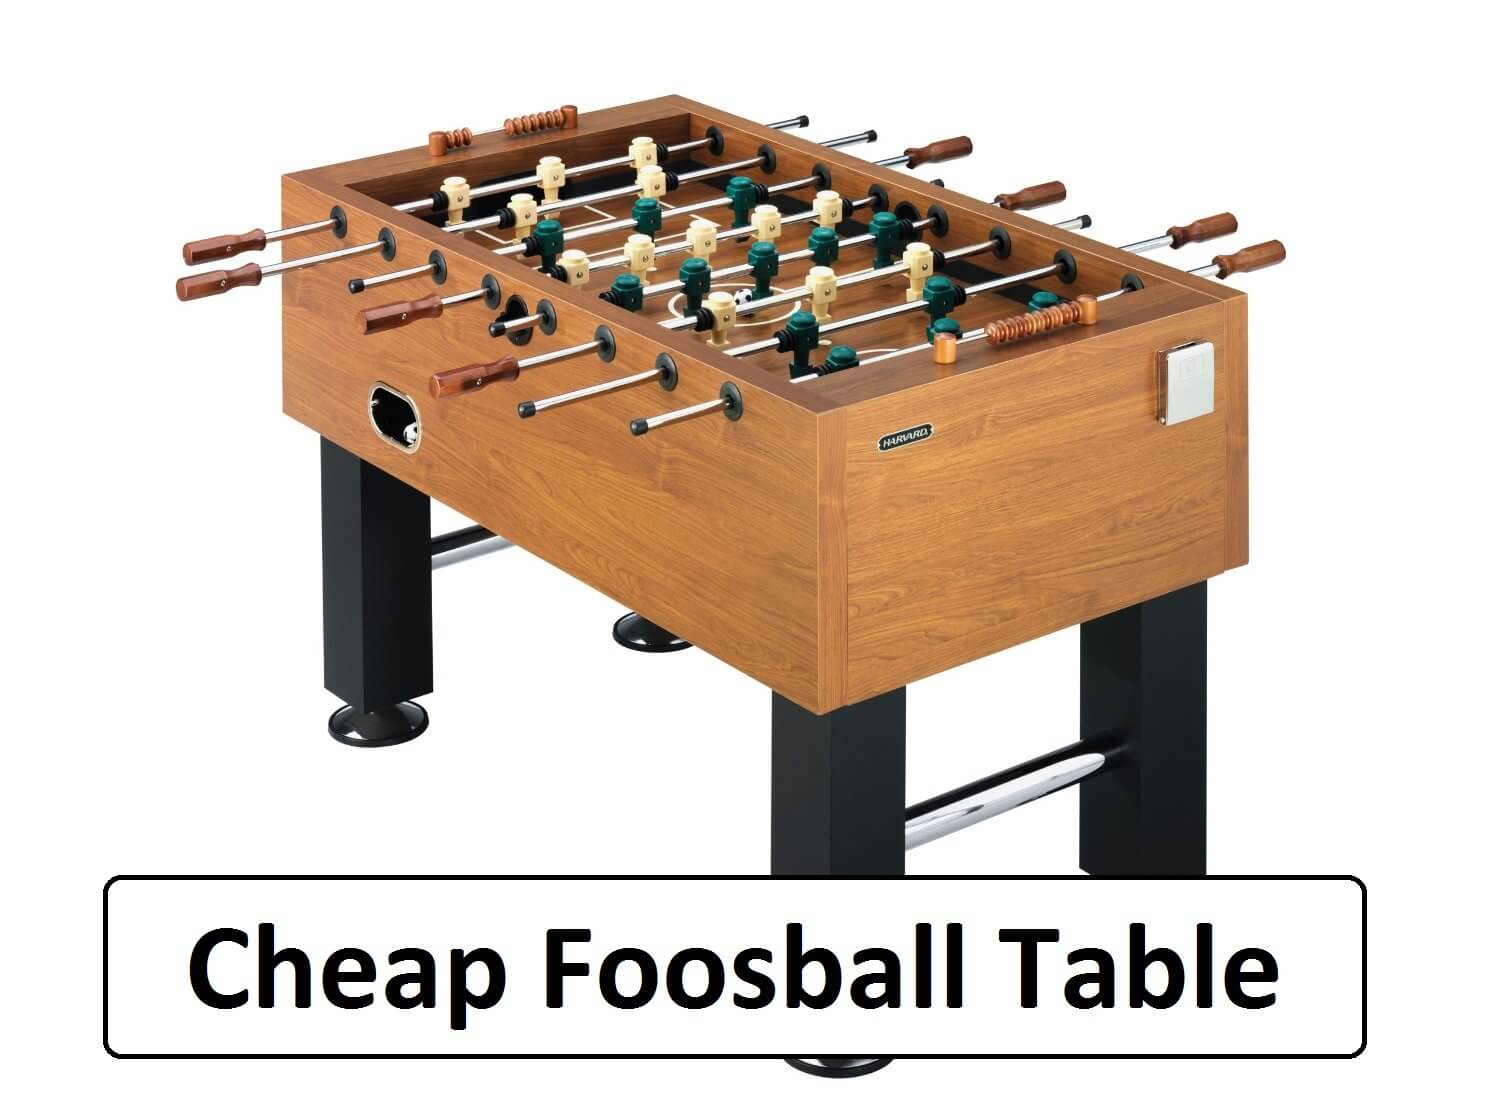 Top Rated Foosball Tables You Should Know - Foosball table cost